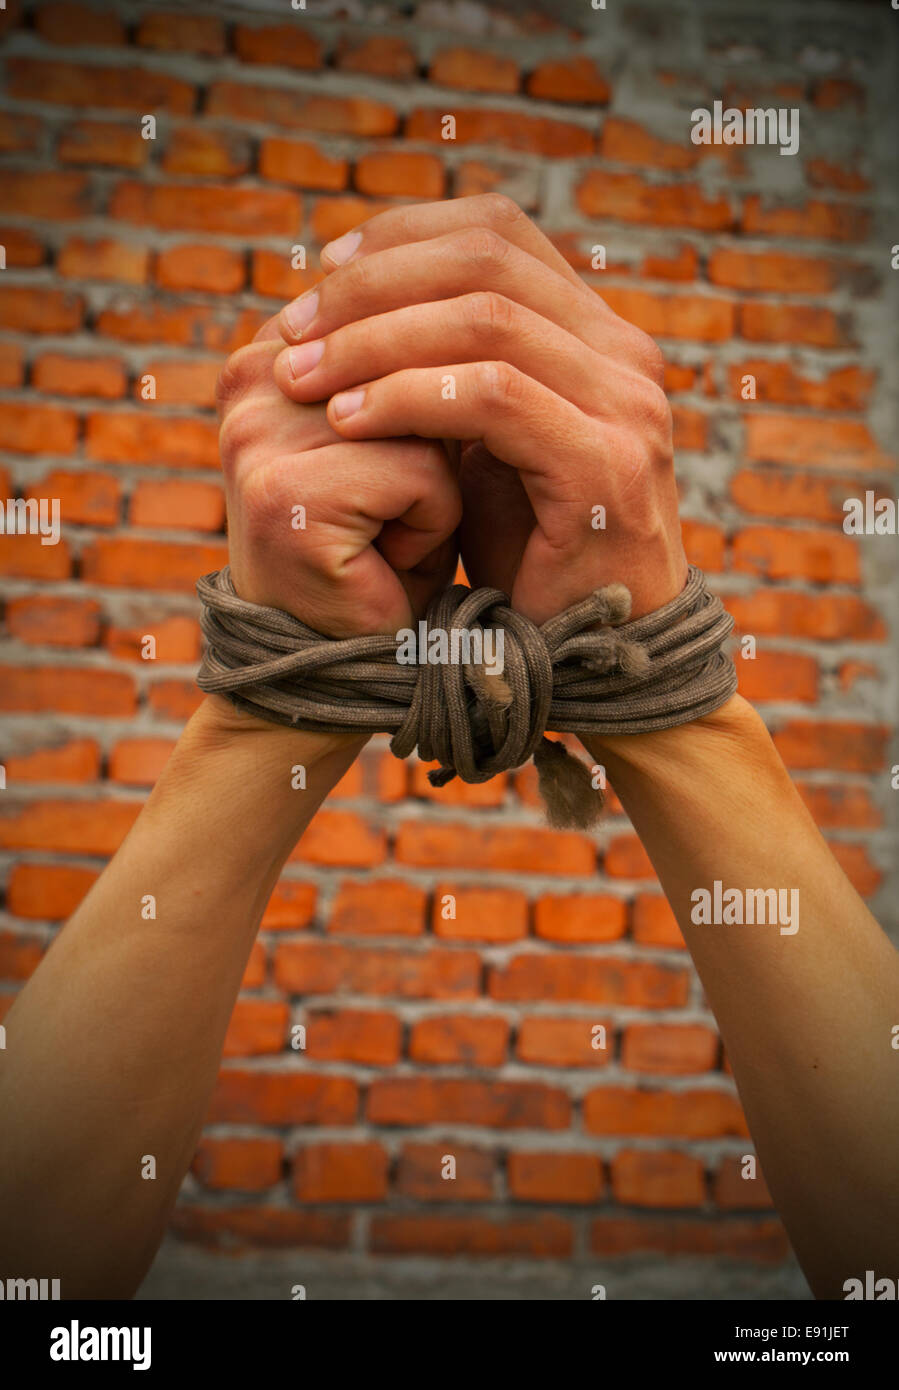 Hands tied up with rope against brick wall - Stock Image